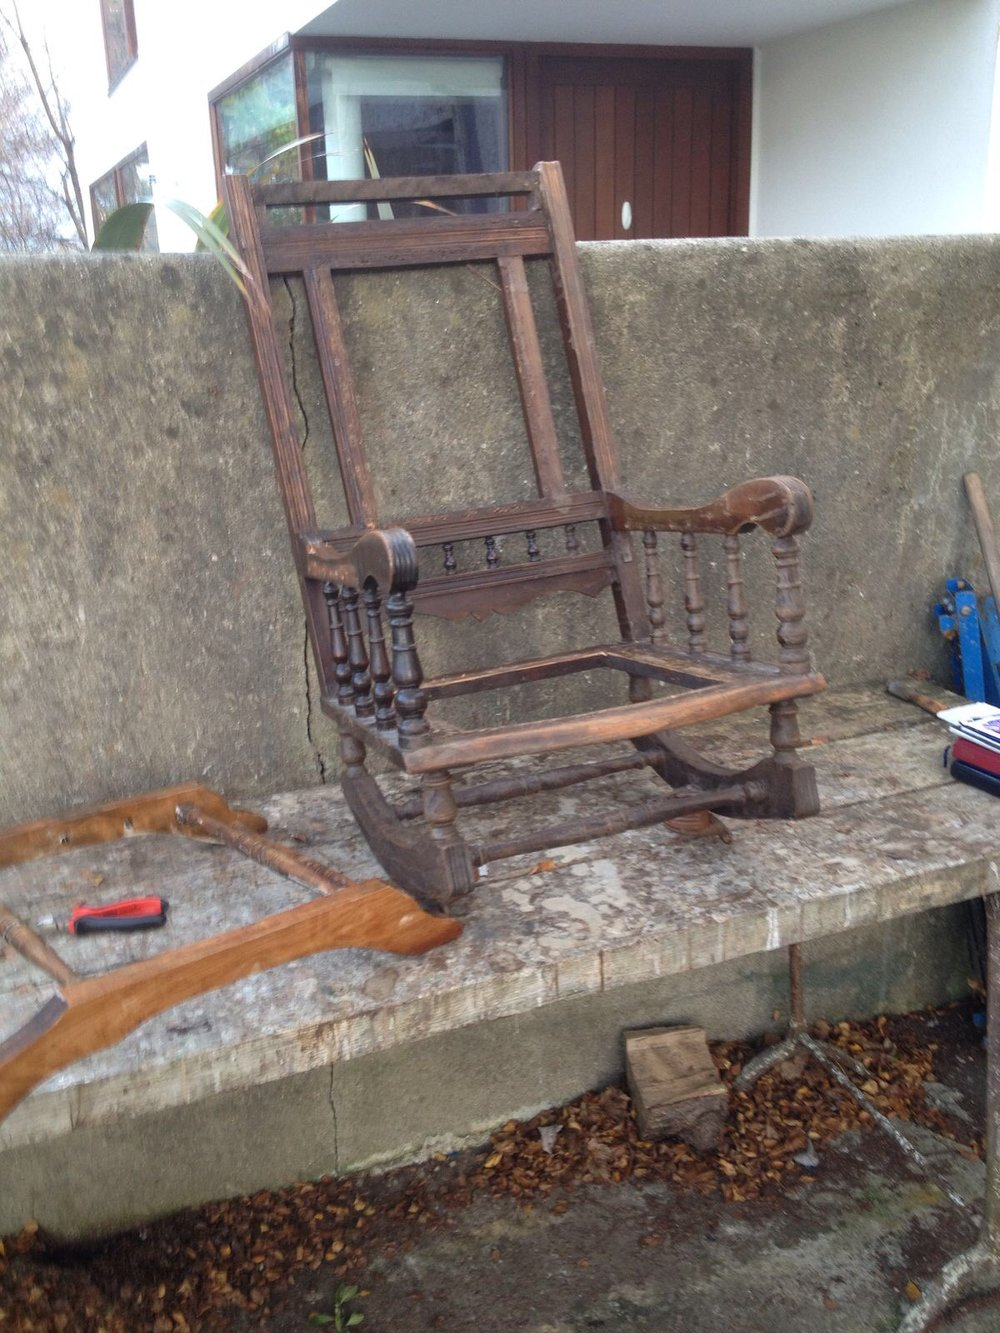 Poor old Rocking Chair in a state